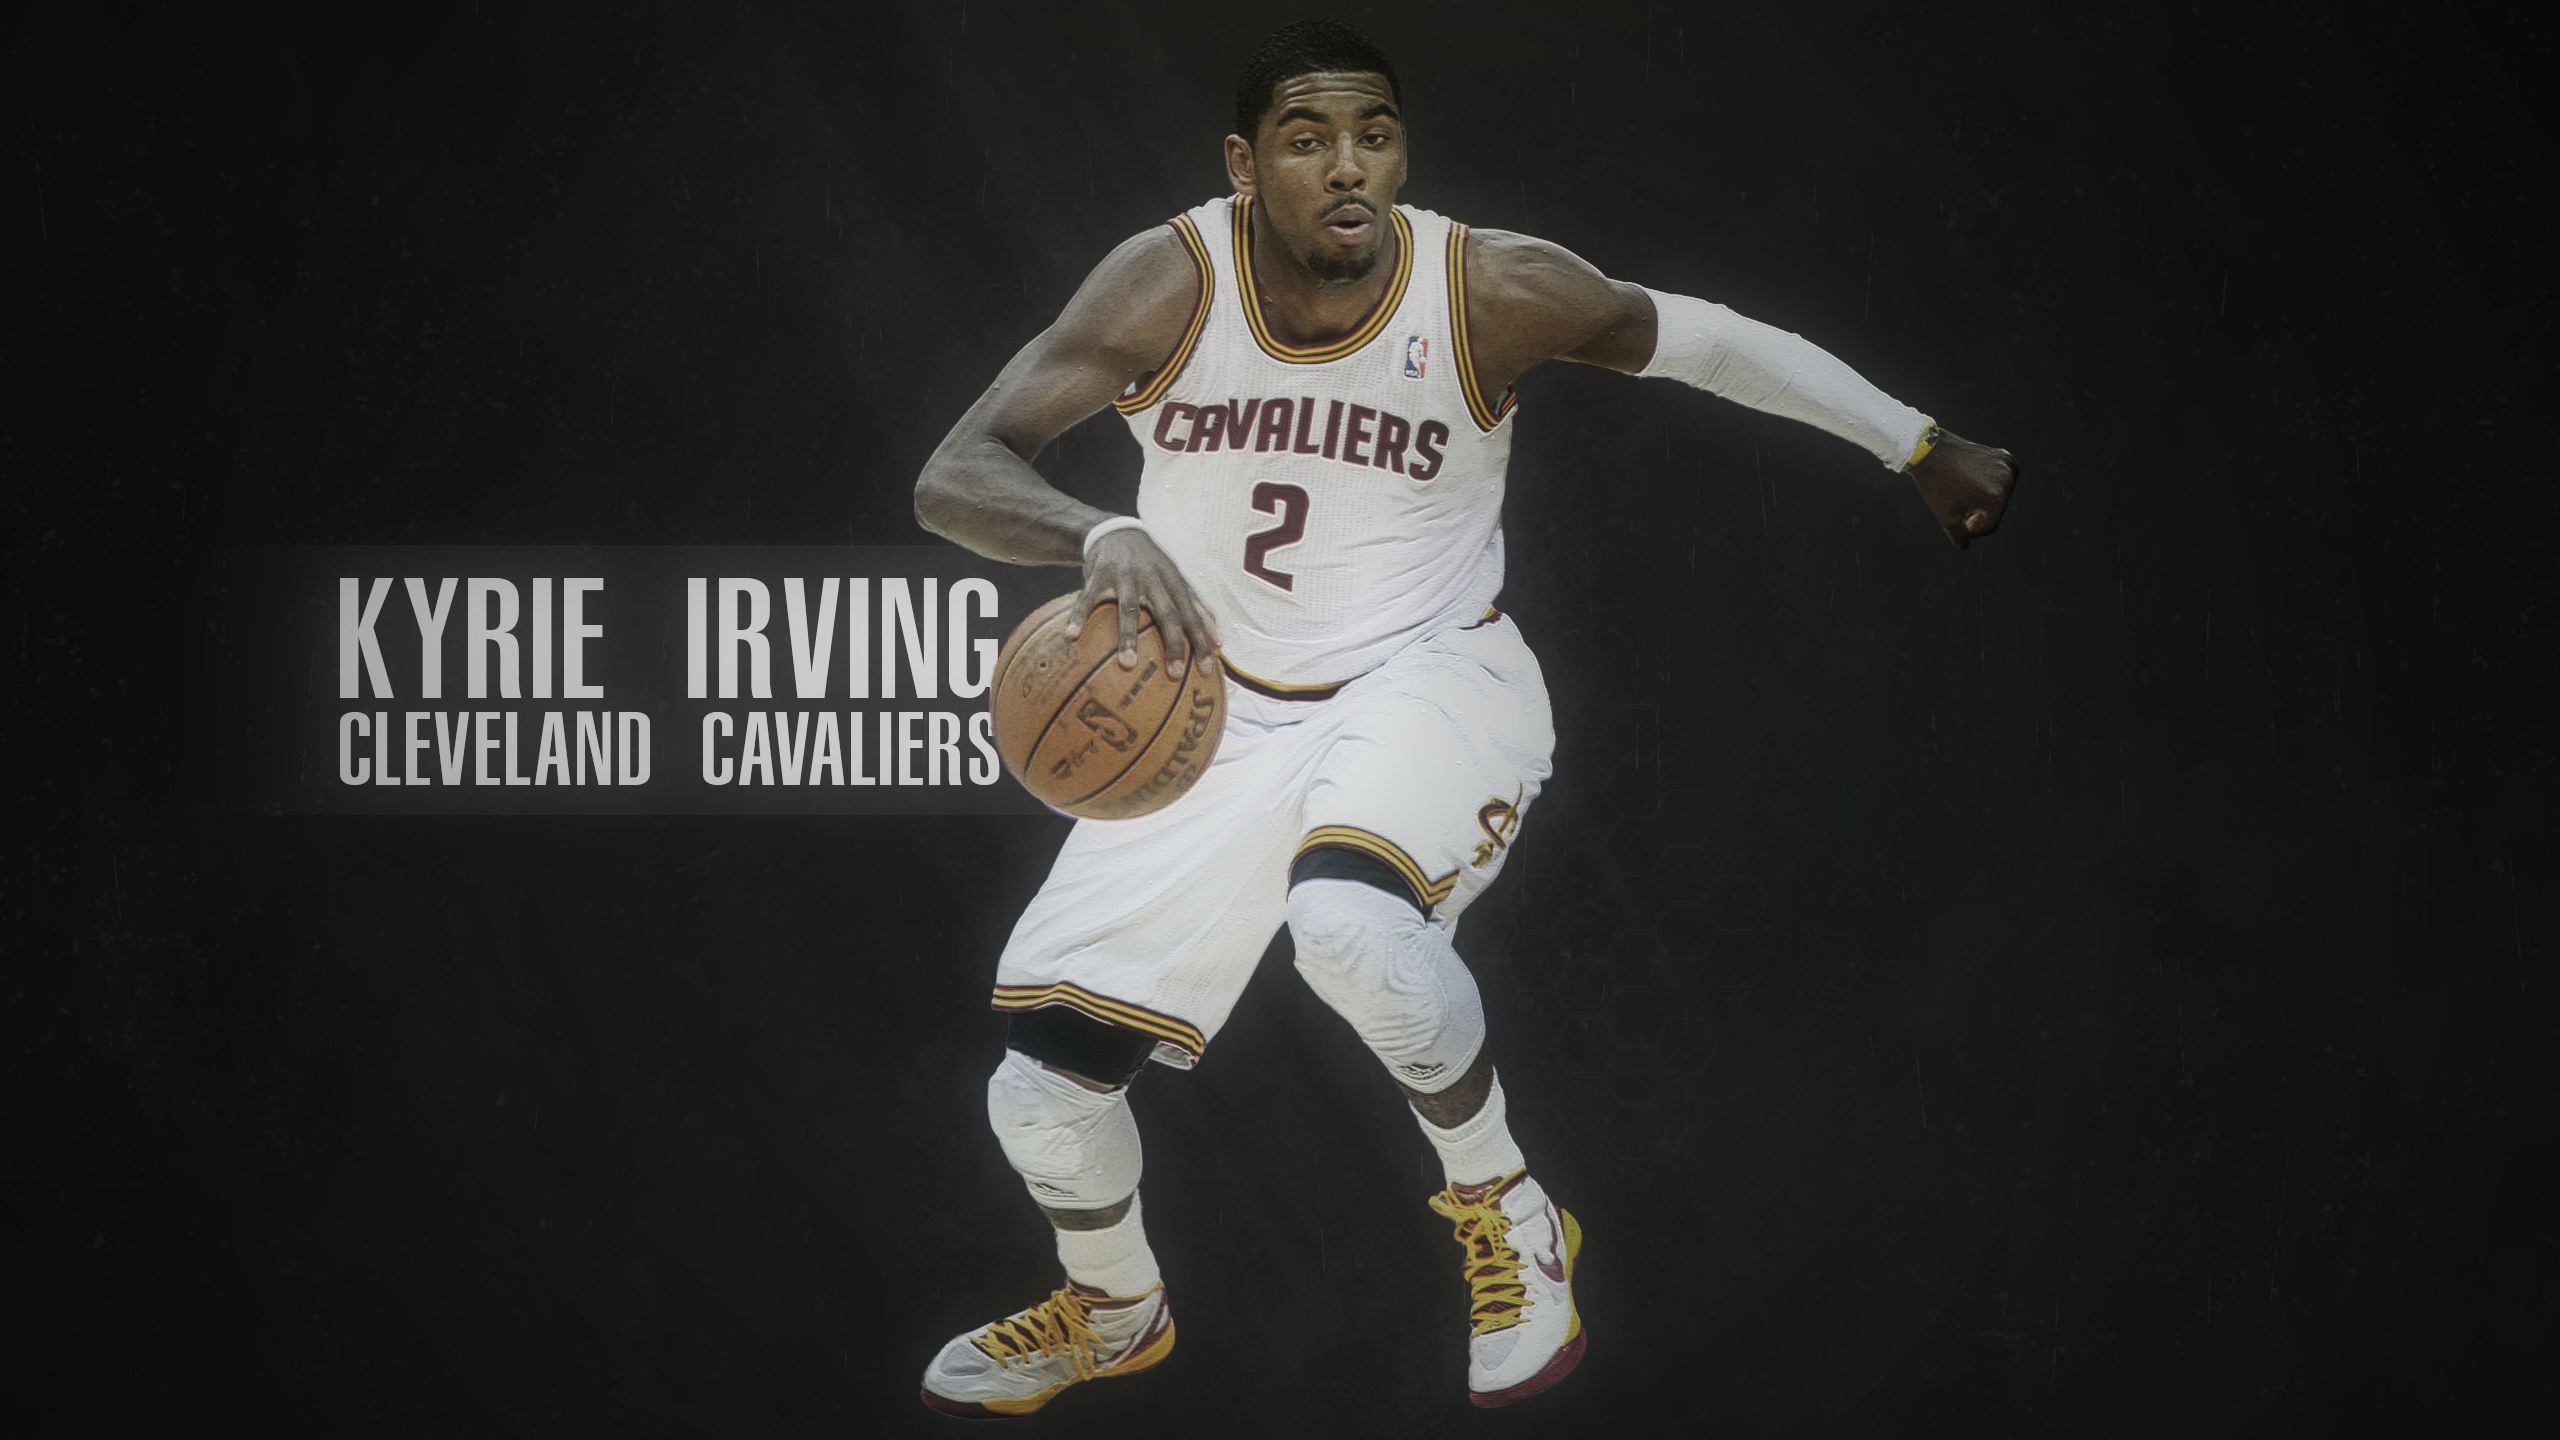 Kyrie Irving Wallpaper By Jamessstudios On Deviantart